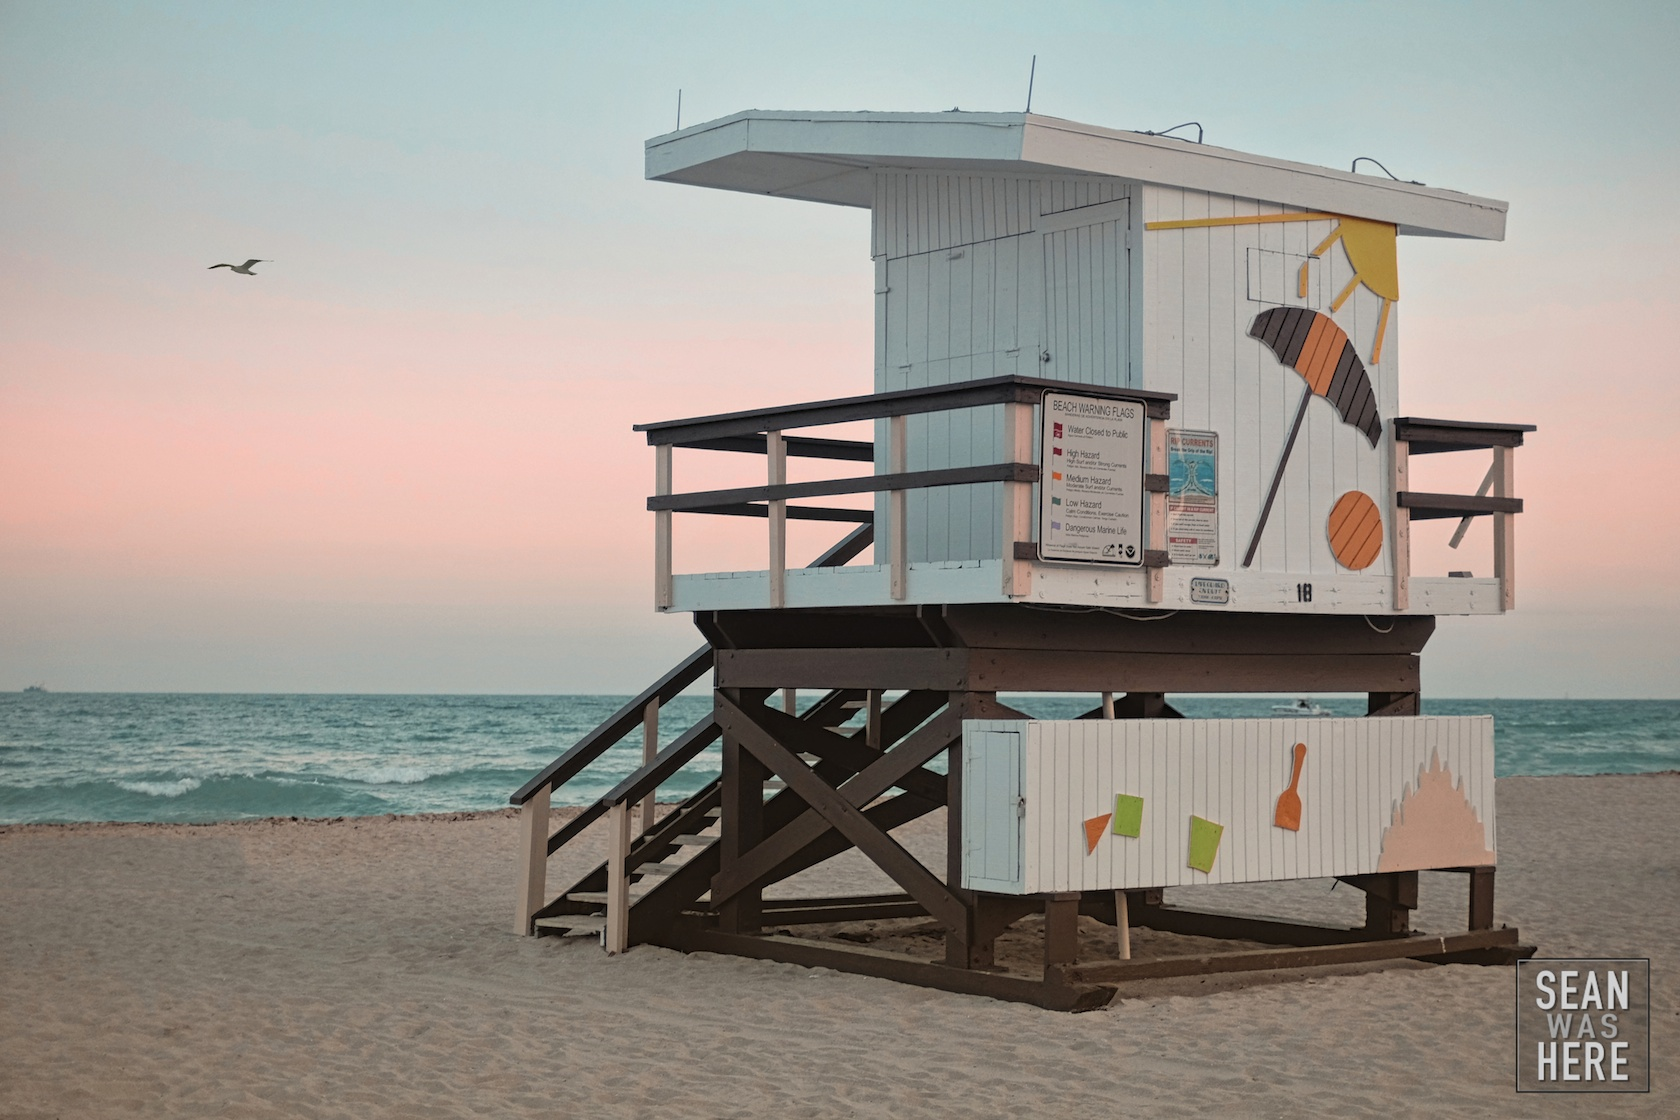 Miami Beach 1th Street Lifeguard Stand